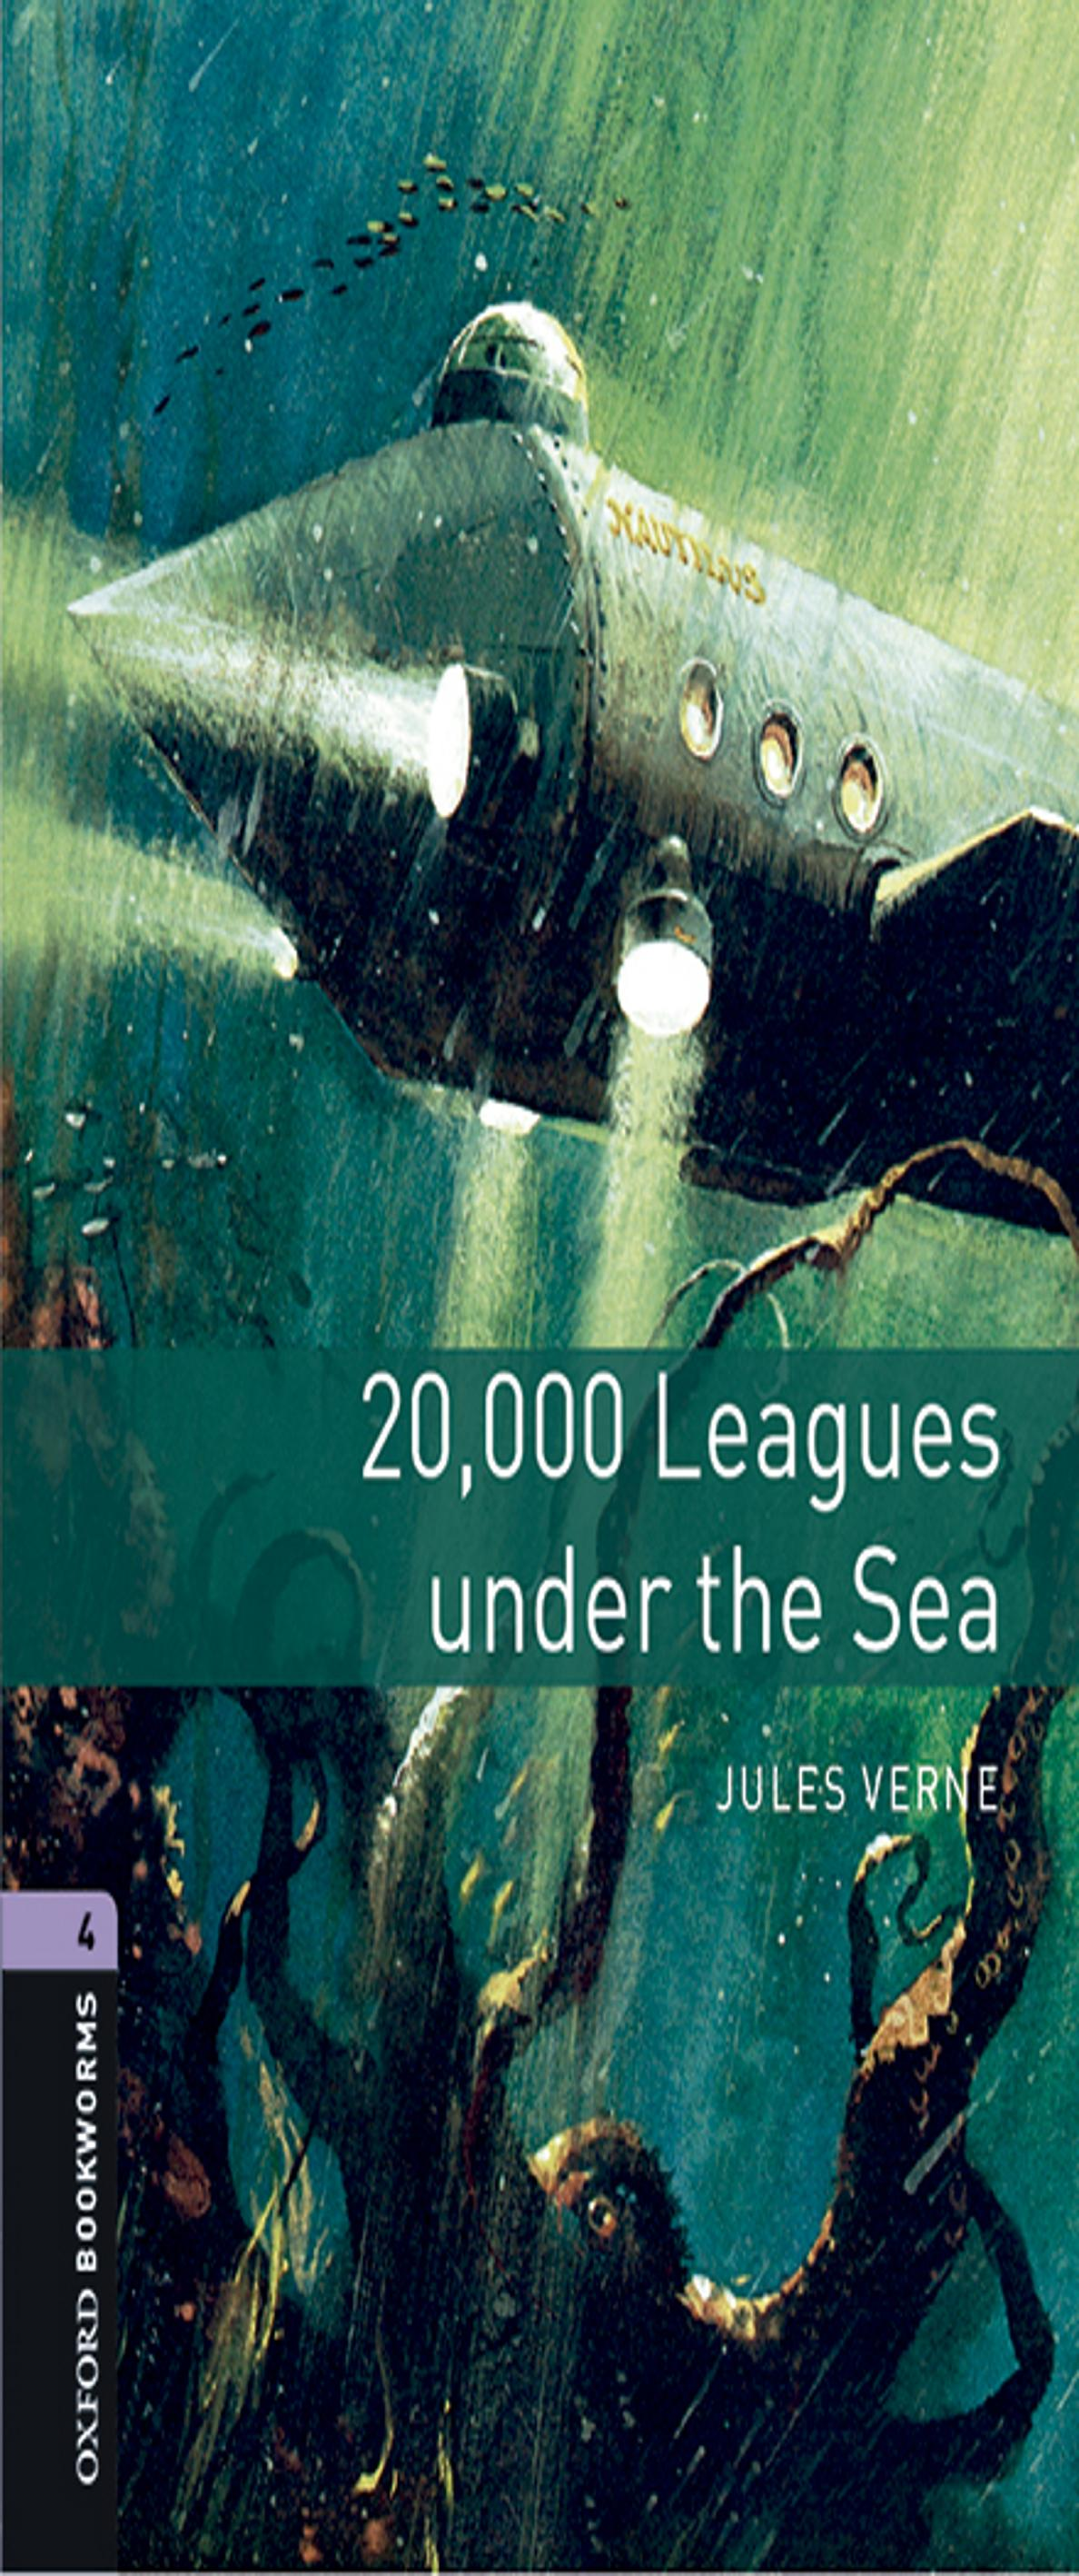 OBL4 - 33 20000 LEAGUES UNDER SEA MP3 PK